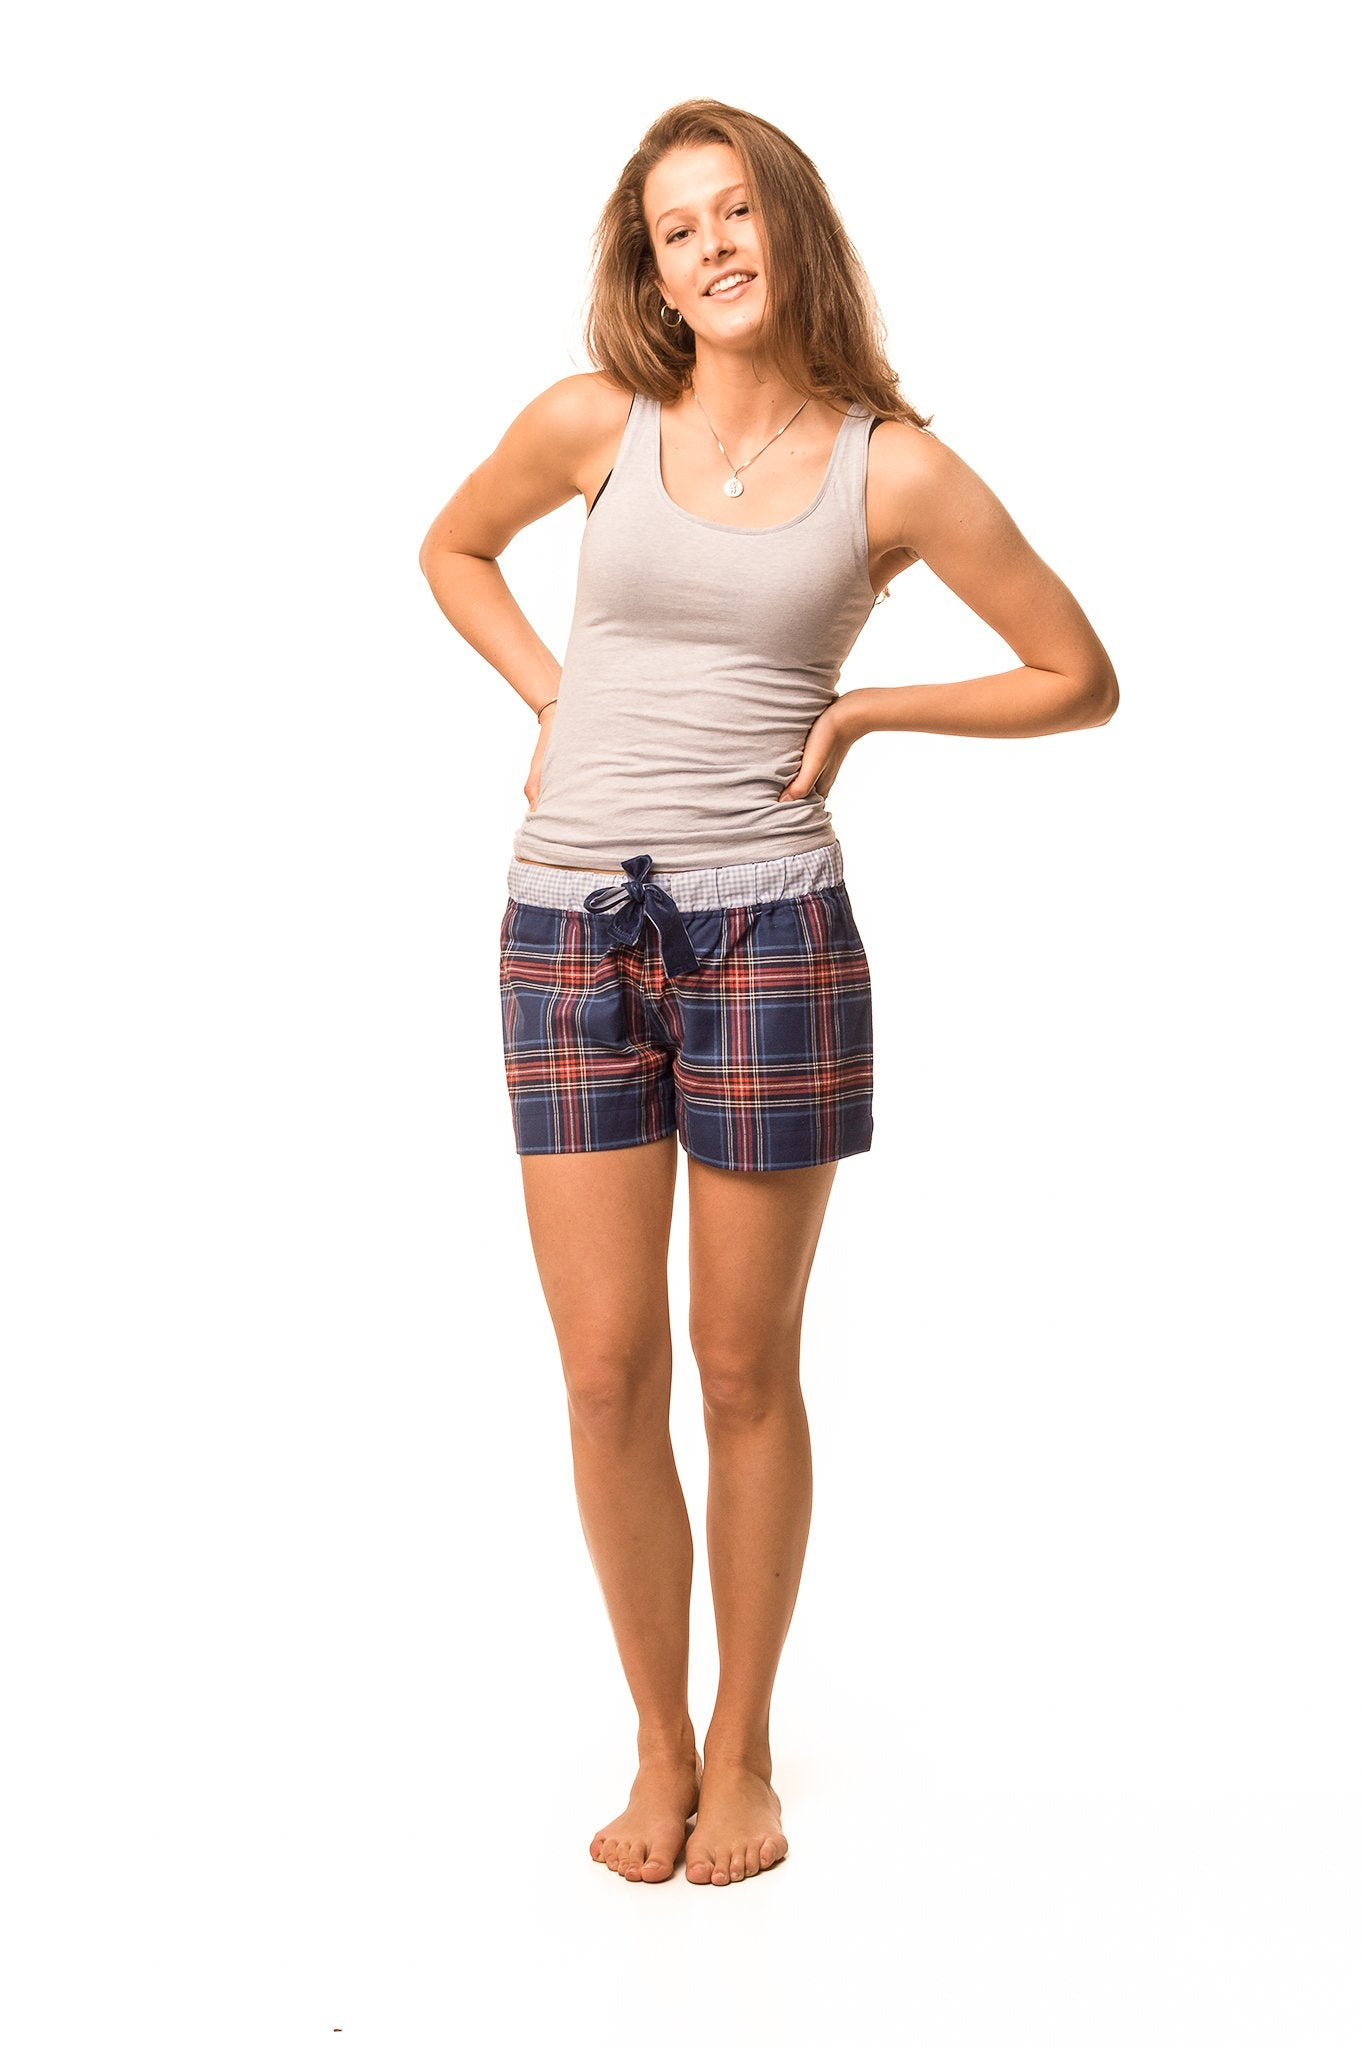 Frensham Blue/red check shorts - Women's